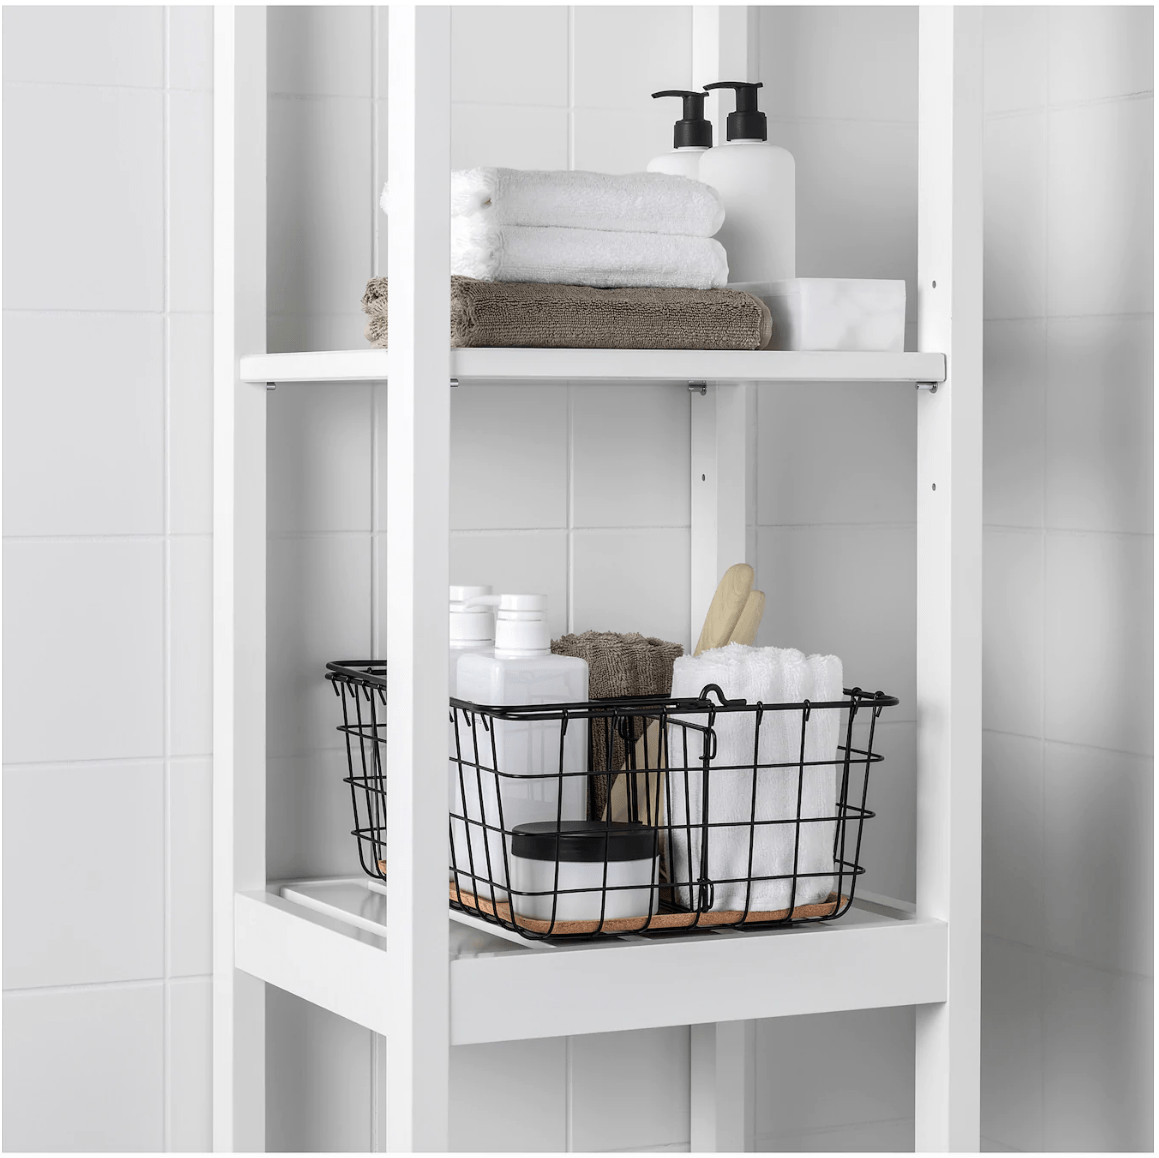 white ikea shelf in bathroom with styled towels in wire basket